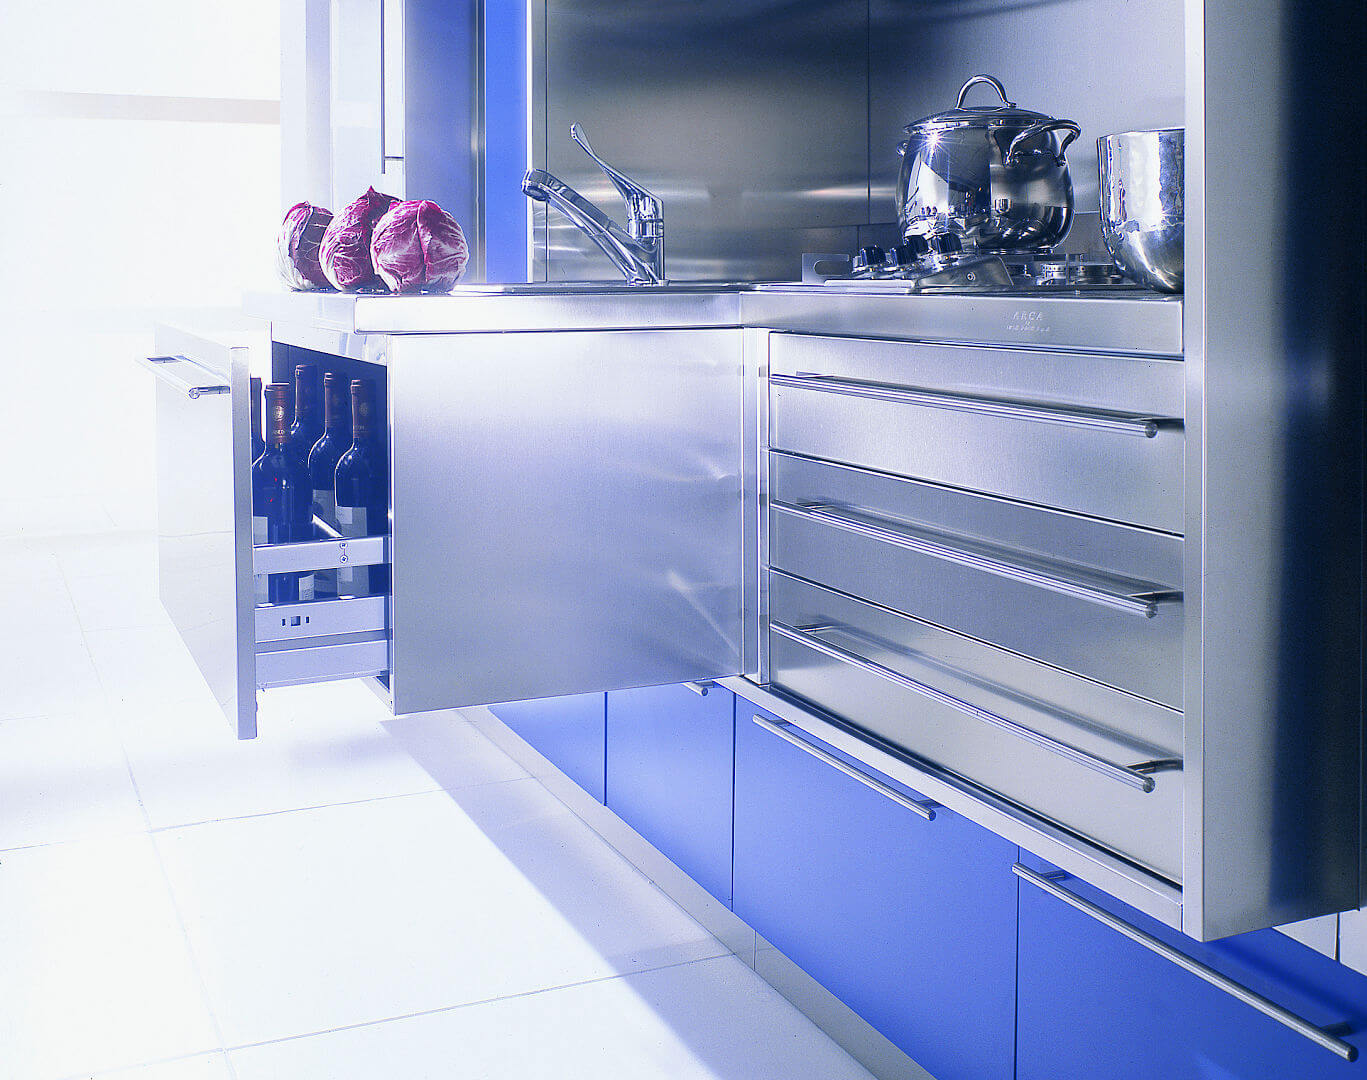 Arca Cucine Italy - Domestic stainless steel kitchens - Wall - Litter bin to Extraction Under Kitchen Sink